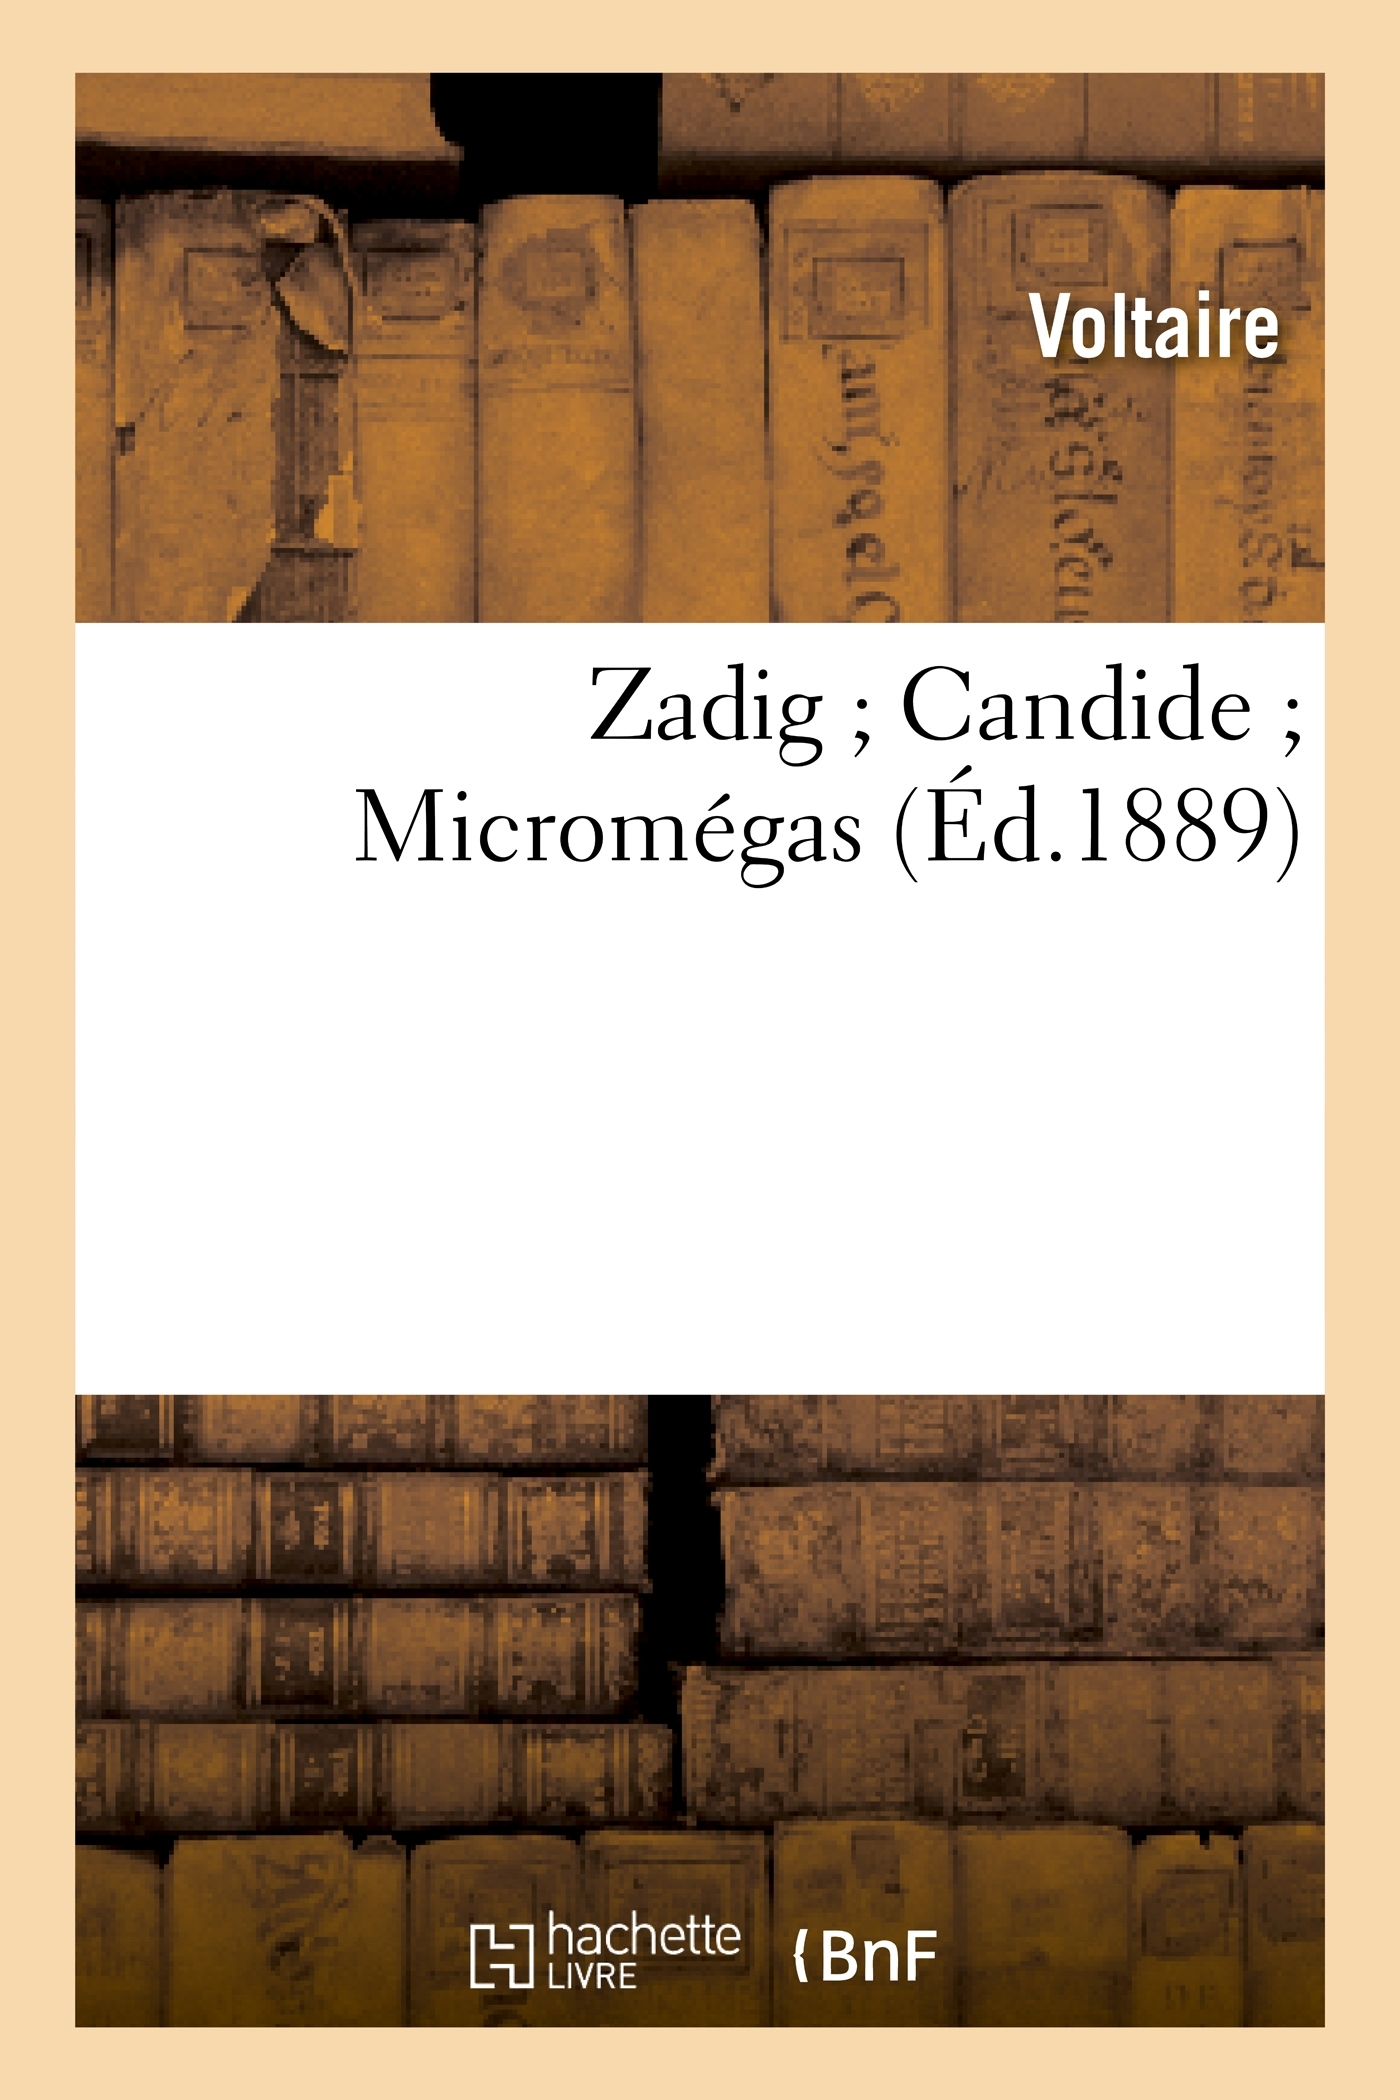 ZADIG CANDIDE MICROMEGAS